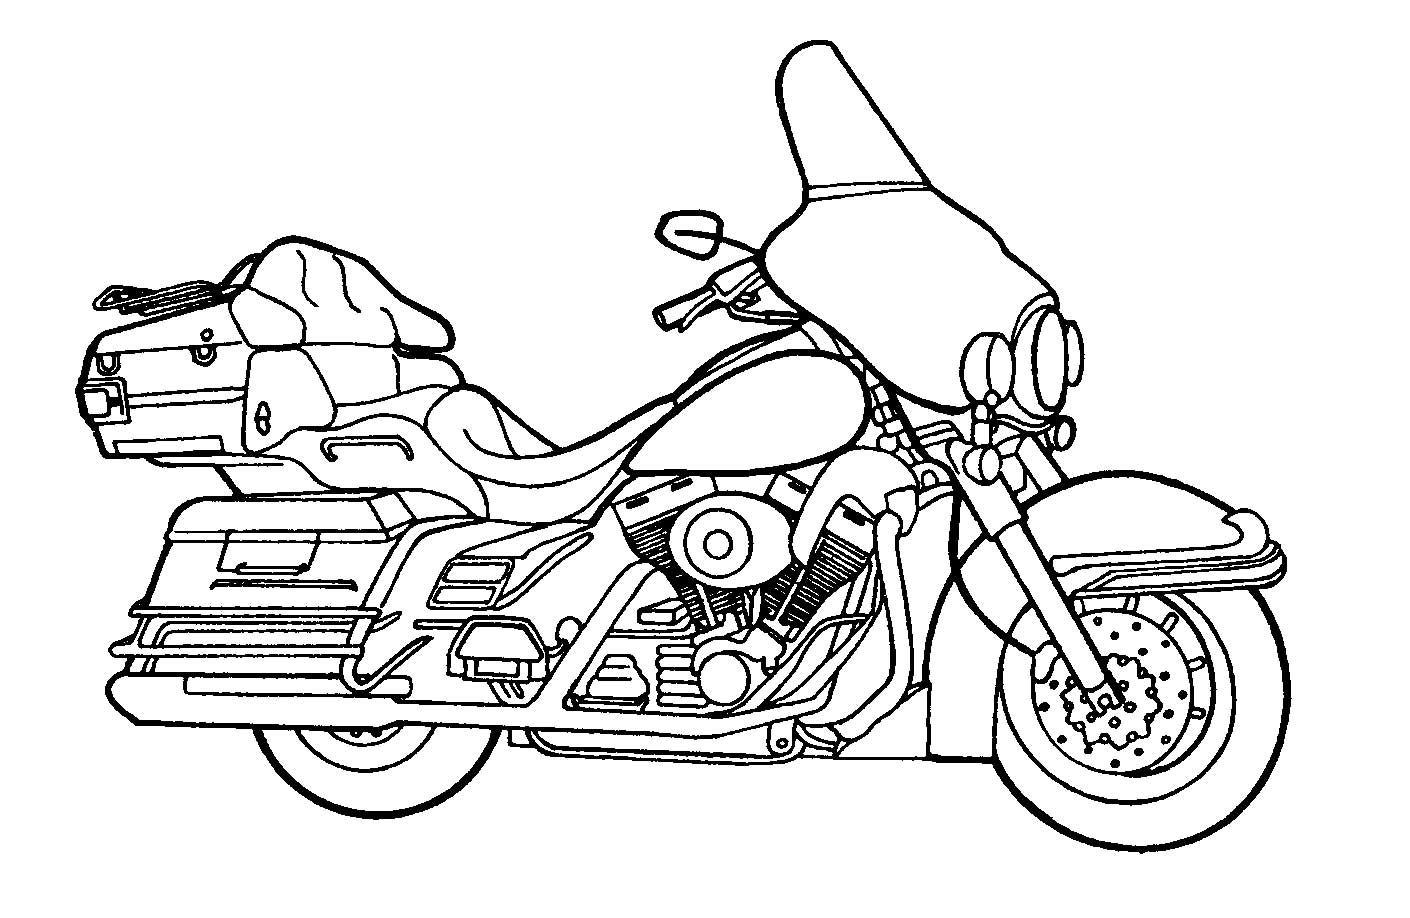 1410x918 Printable Motorcycle Coloring Pages For Preschoolers Http